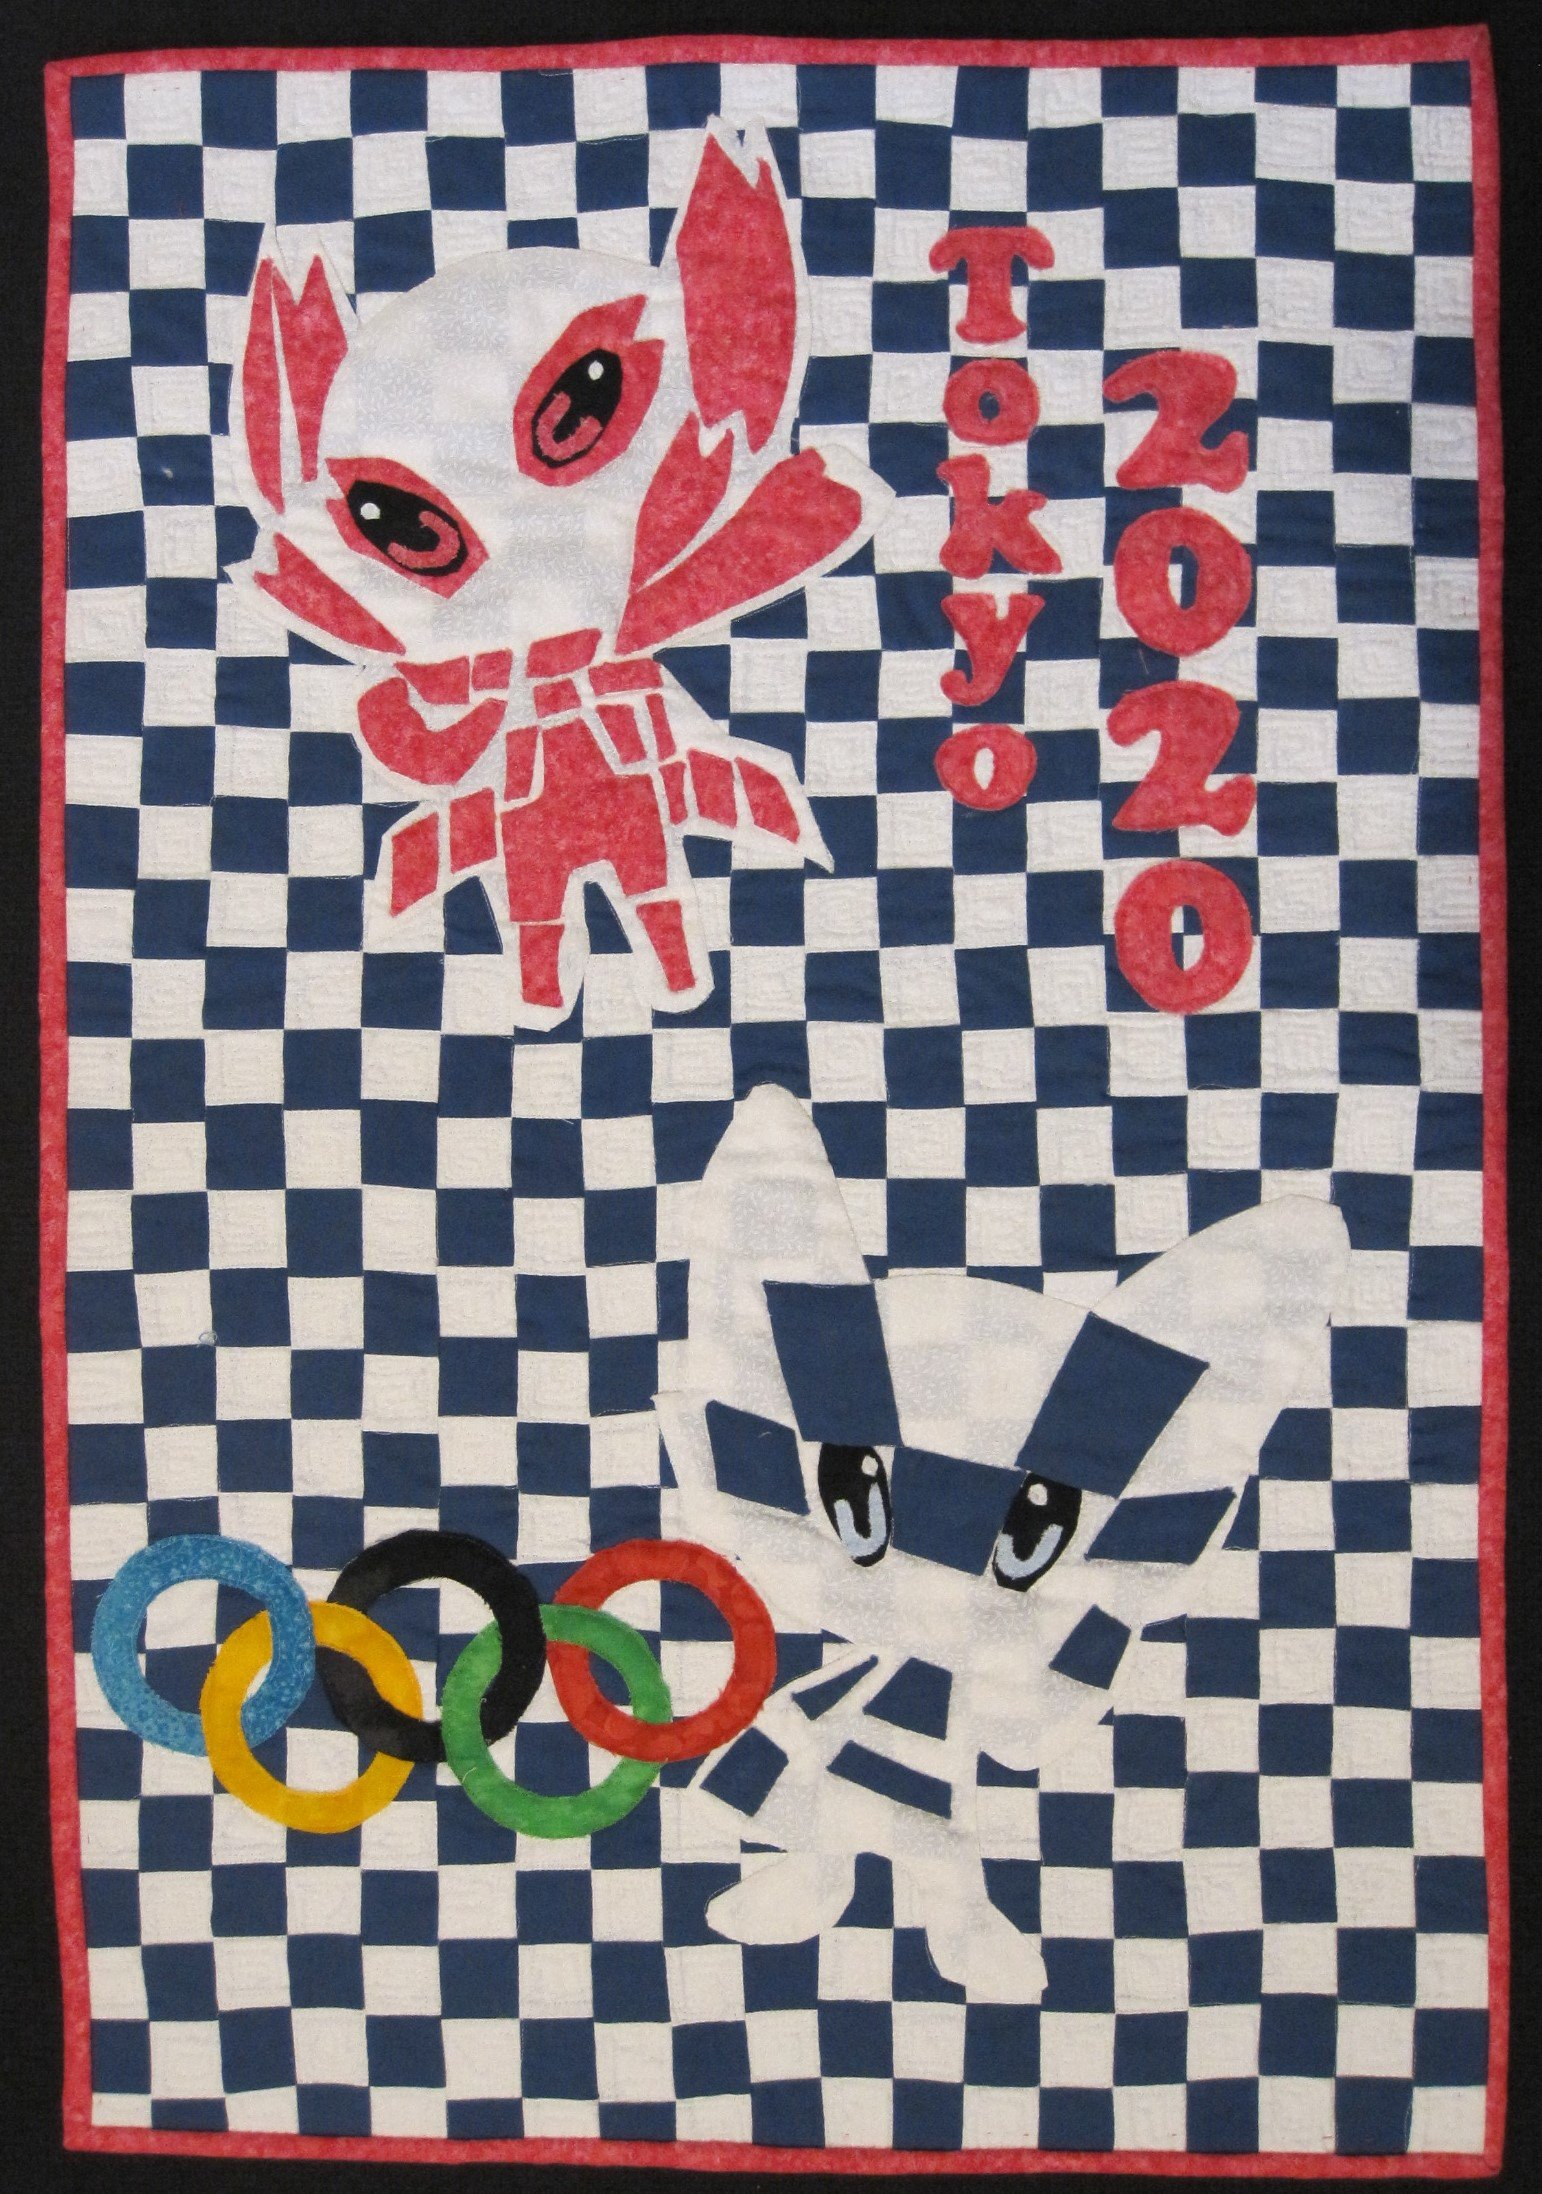 MASCOTS FOR THE 2020 OLYMPIC GAMES